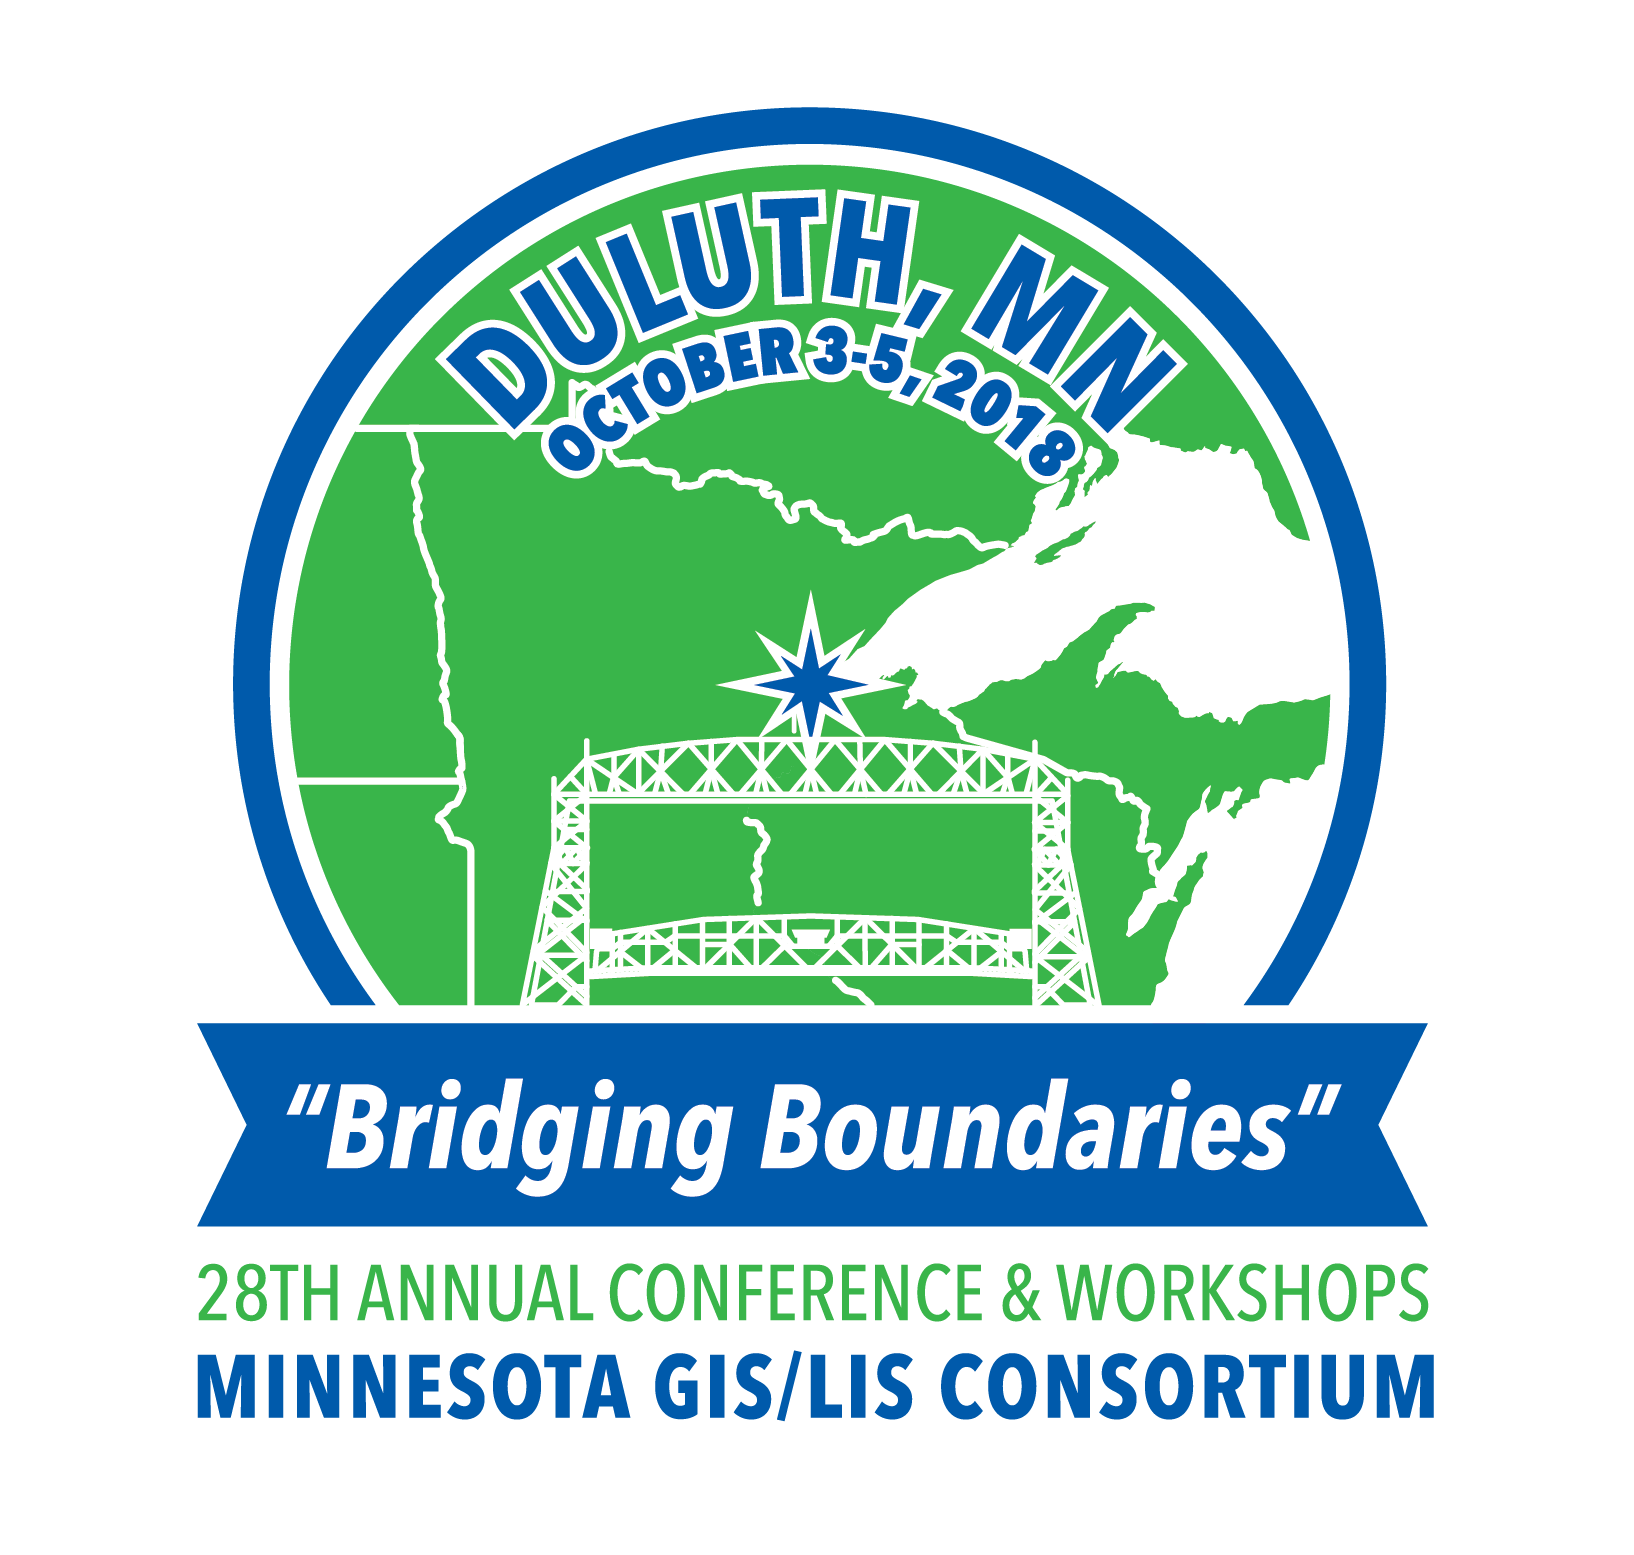 2018 MnGIS/LIS Conference;